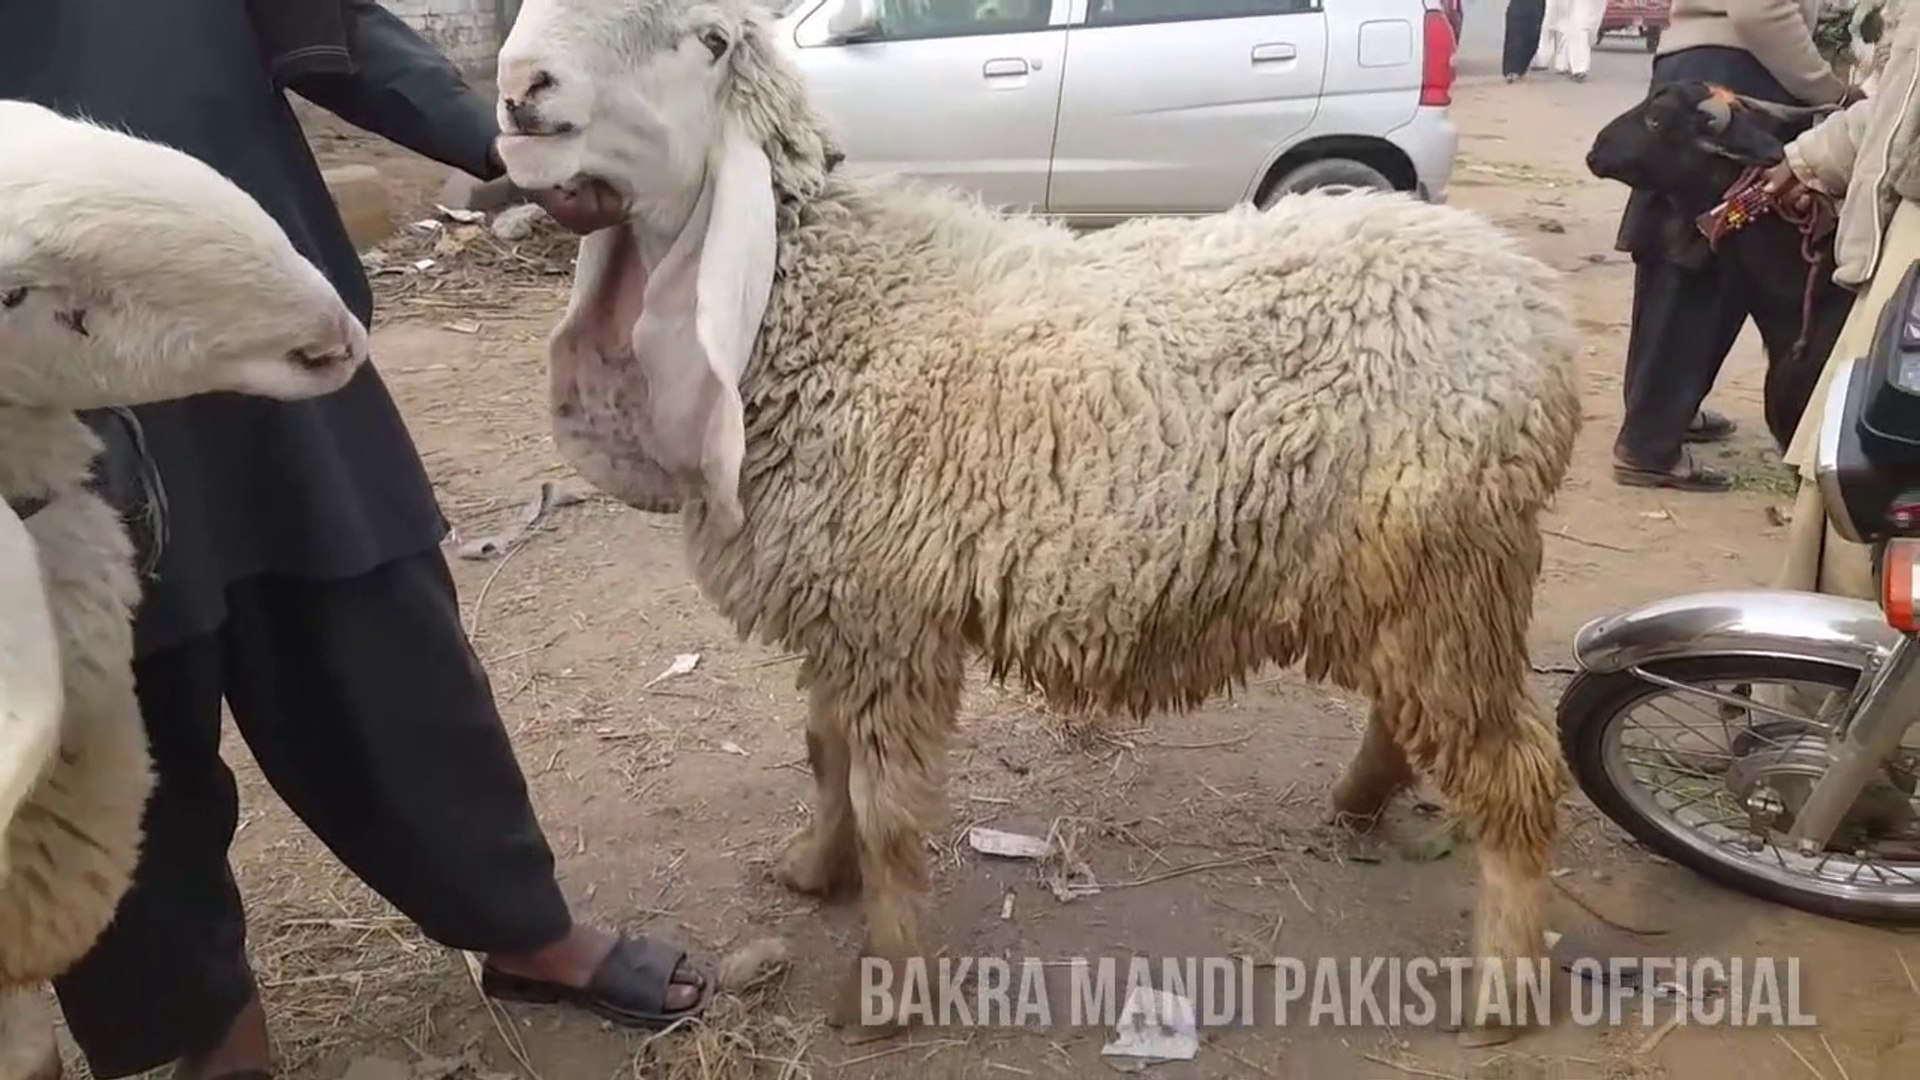 JUST APP K LIYE MUNDRAY - Kajla - Chatra aur Desi Bakra - 2017 - 2018 -  Bakraeid in Pakistan